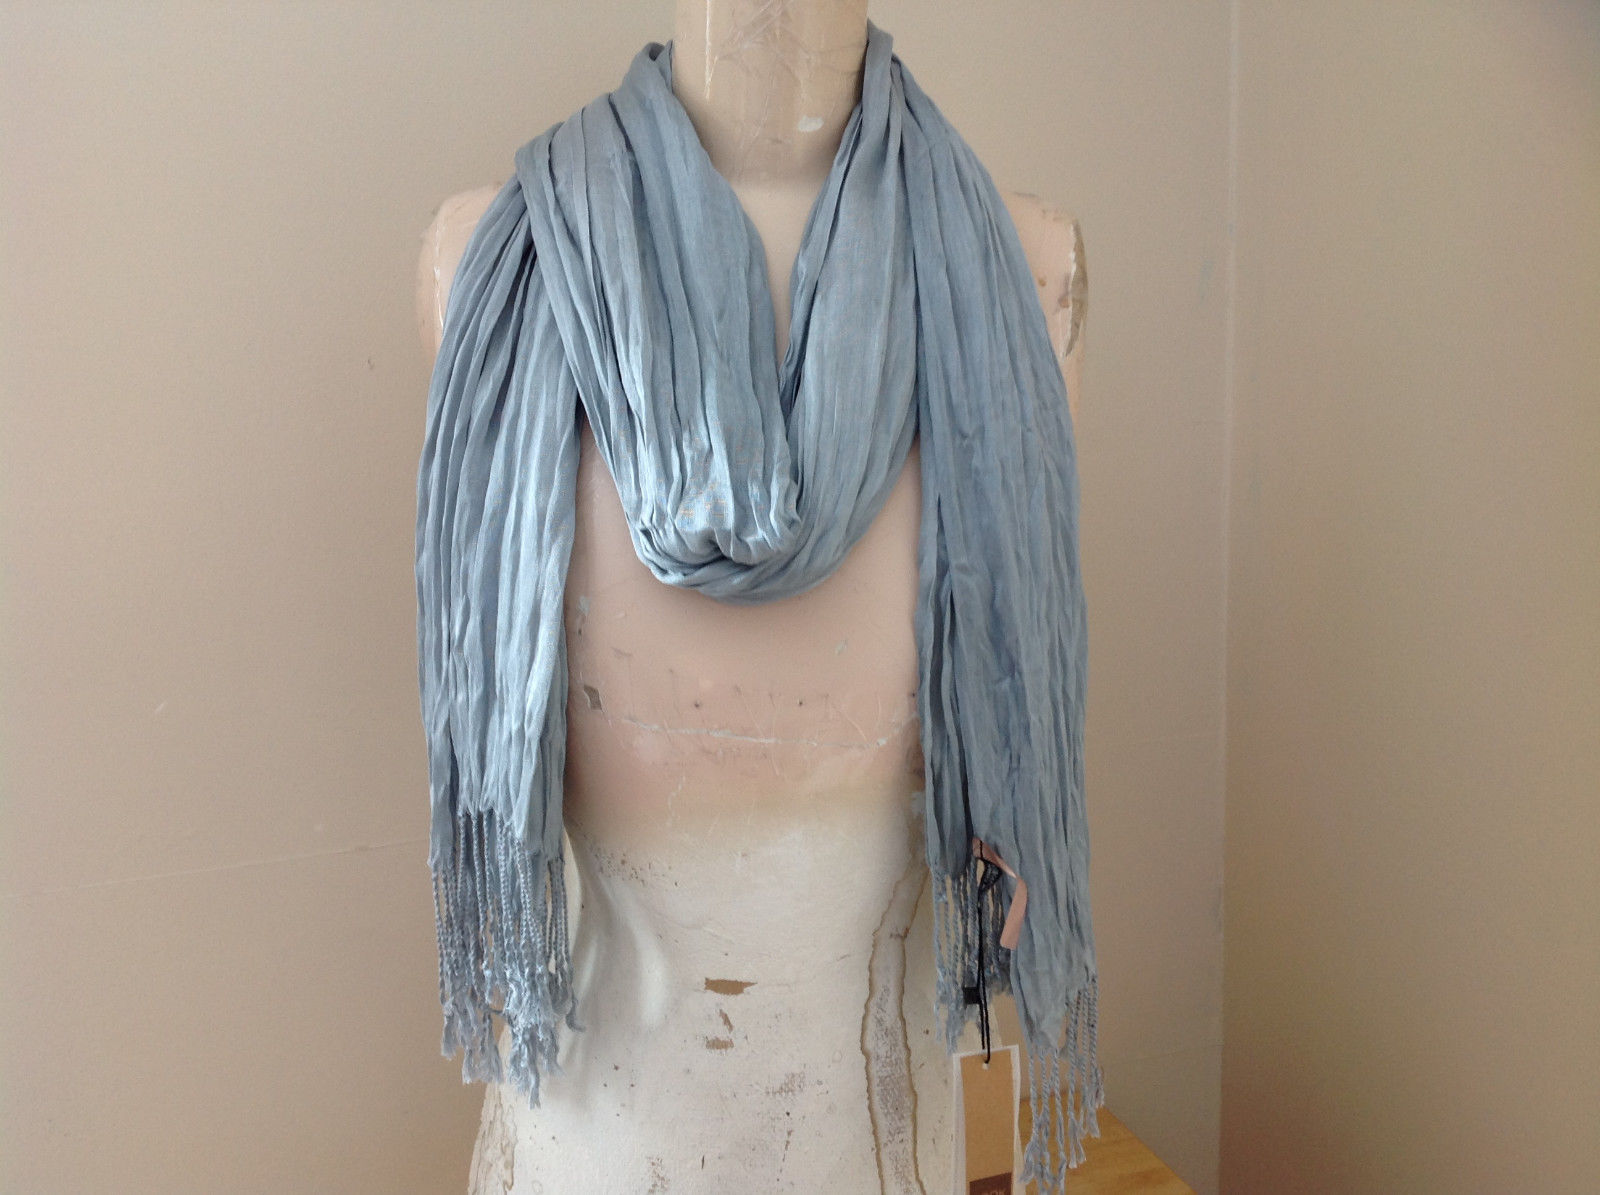 Light Gray Silk Cotton Scrunch Style Scarf with Tassels by Look Tag Attached